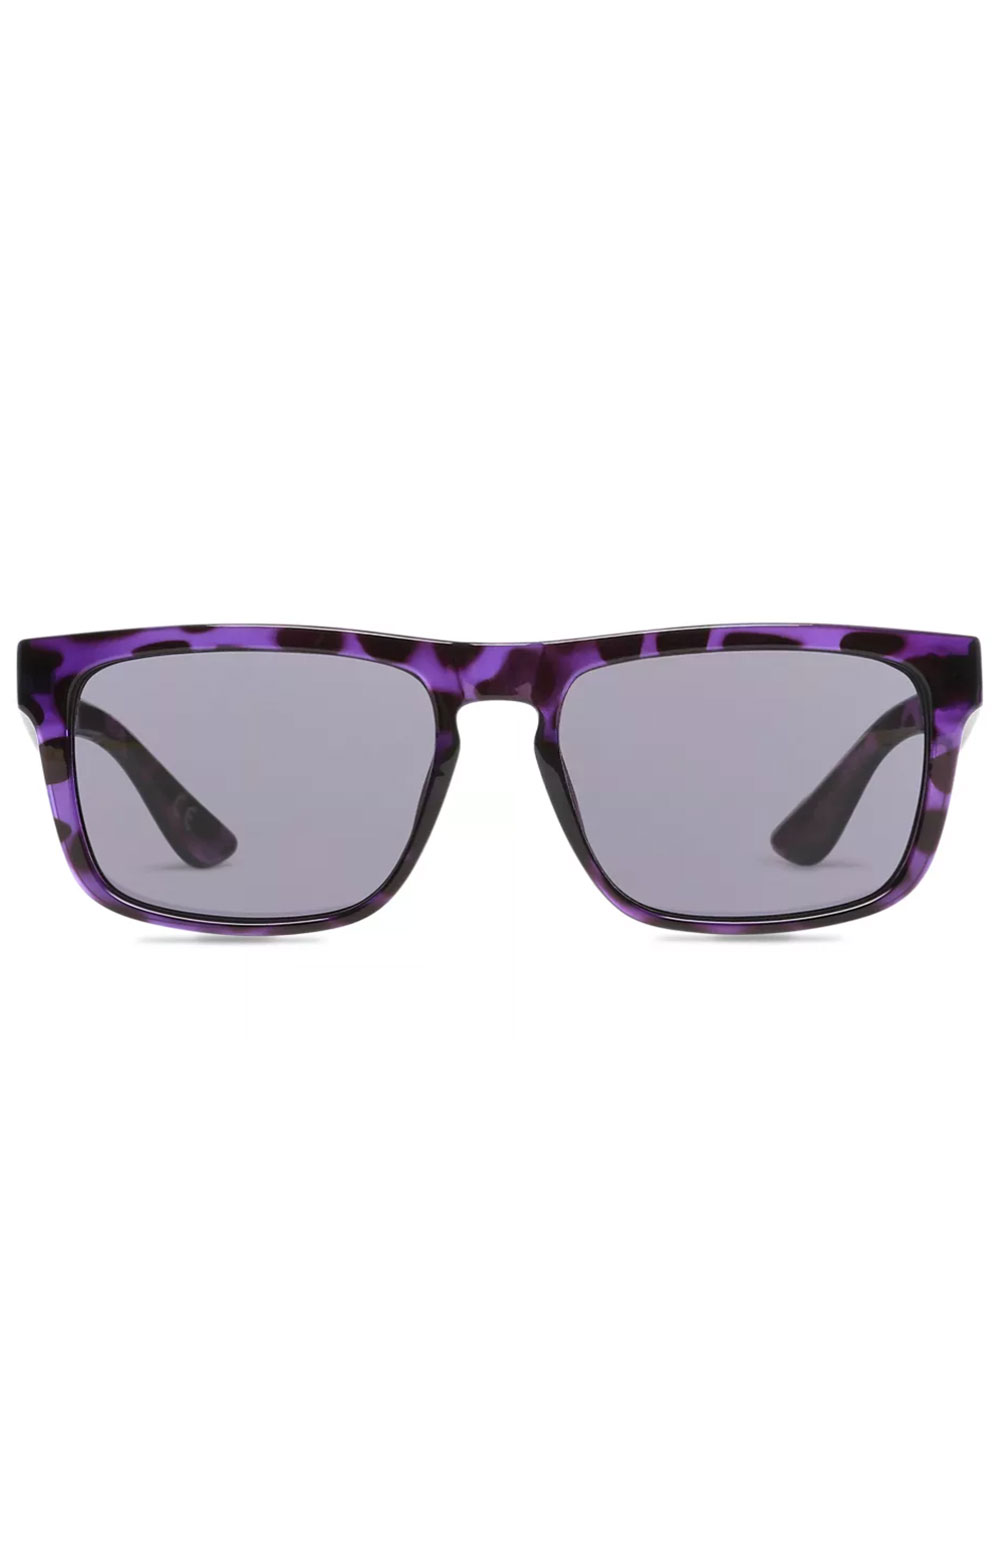 Squared Off Sunglasses - Port Royale  3